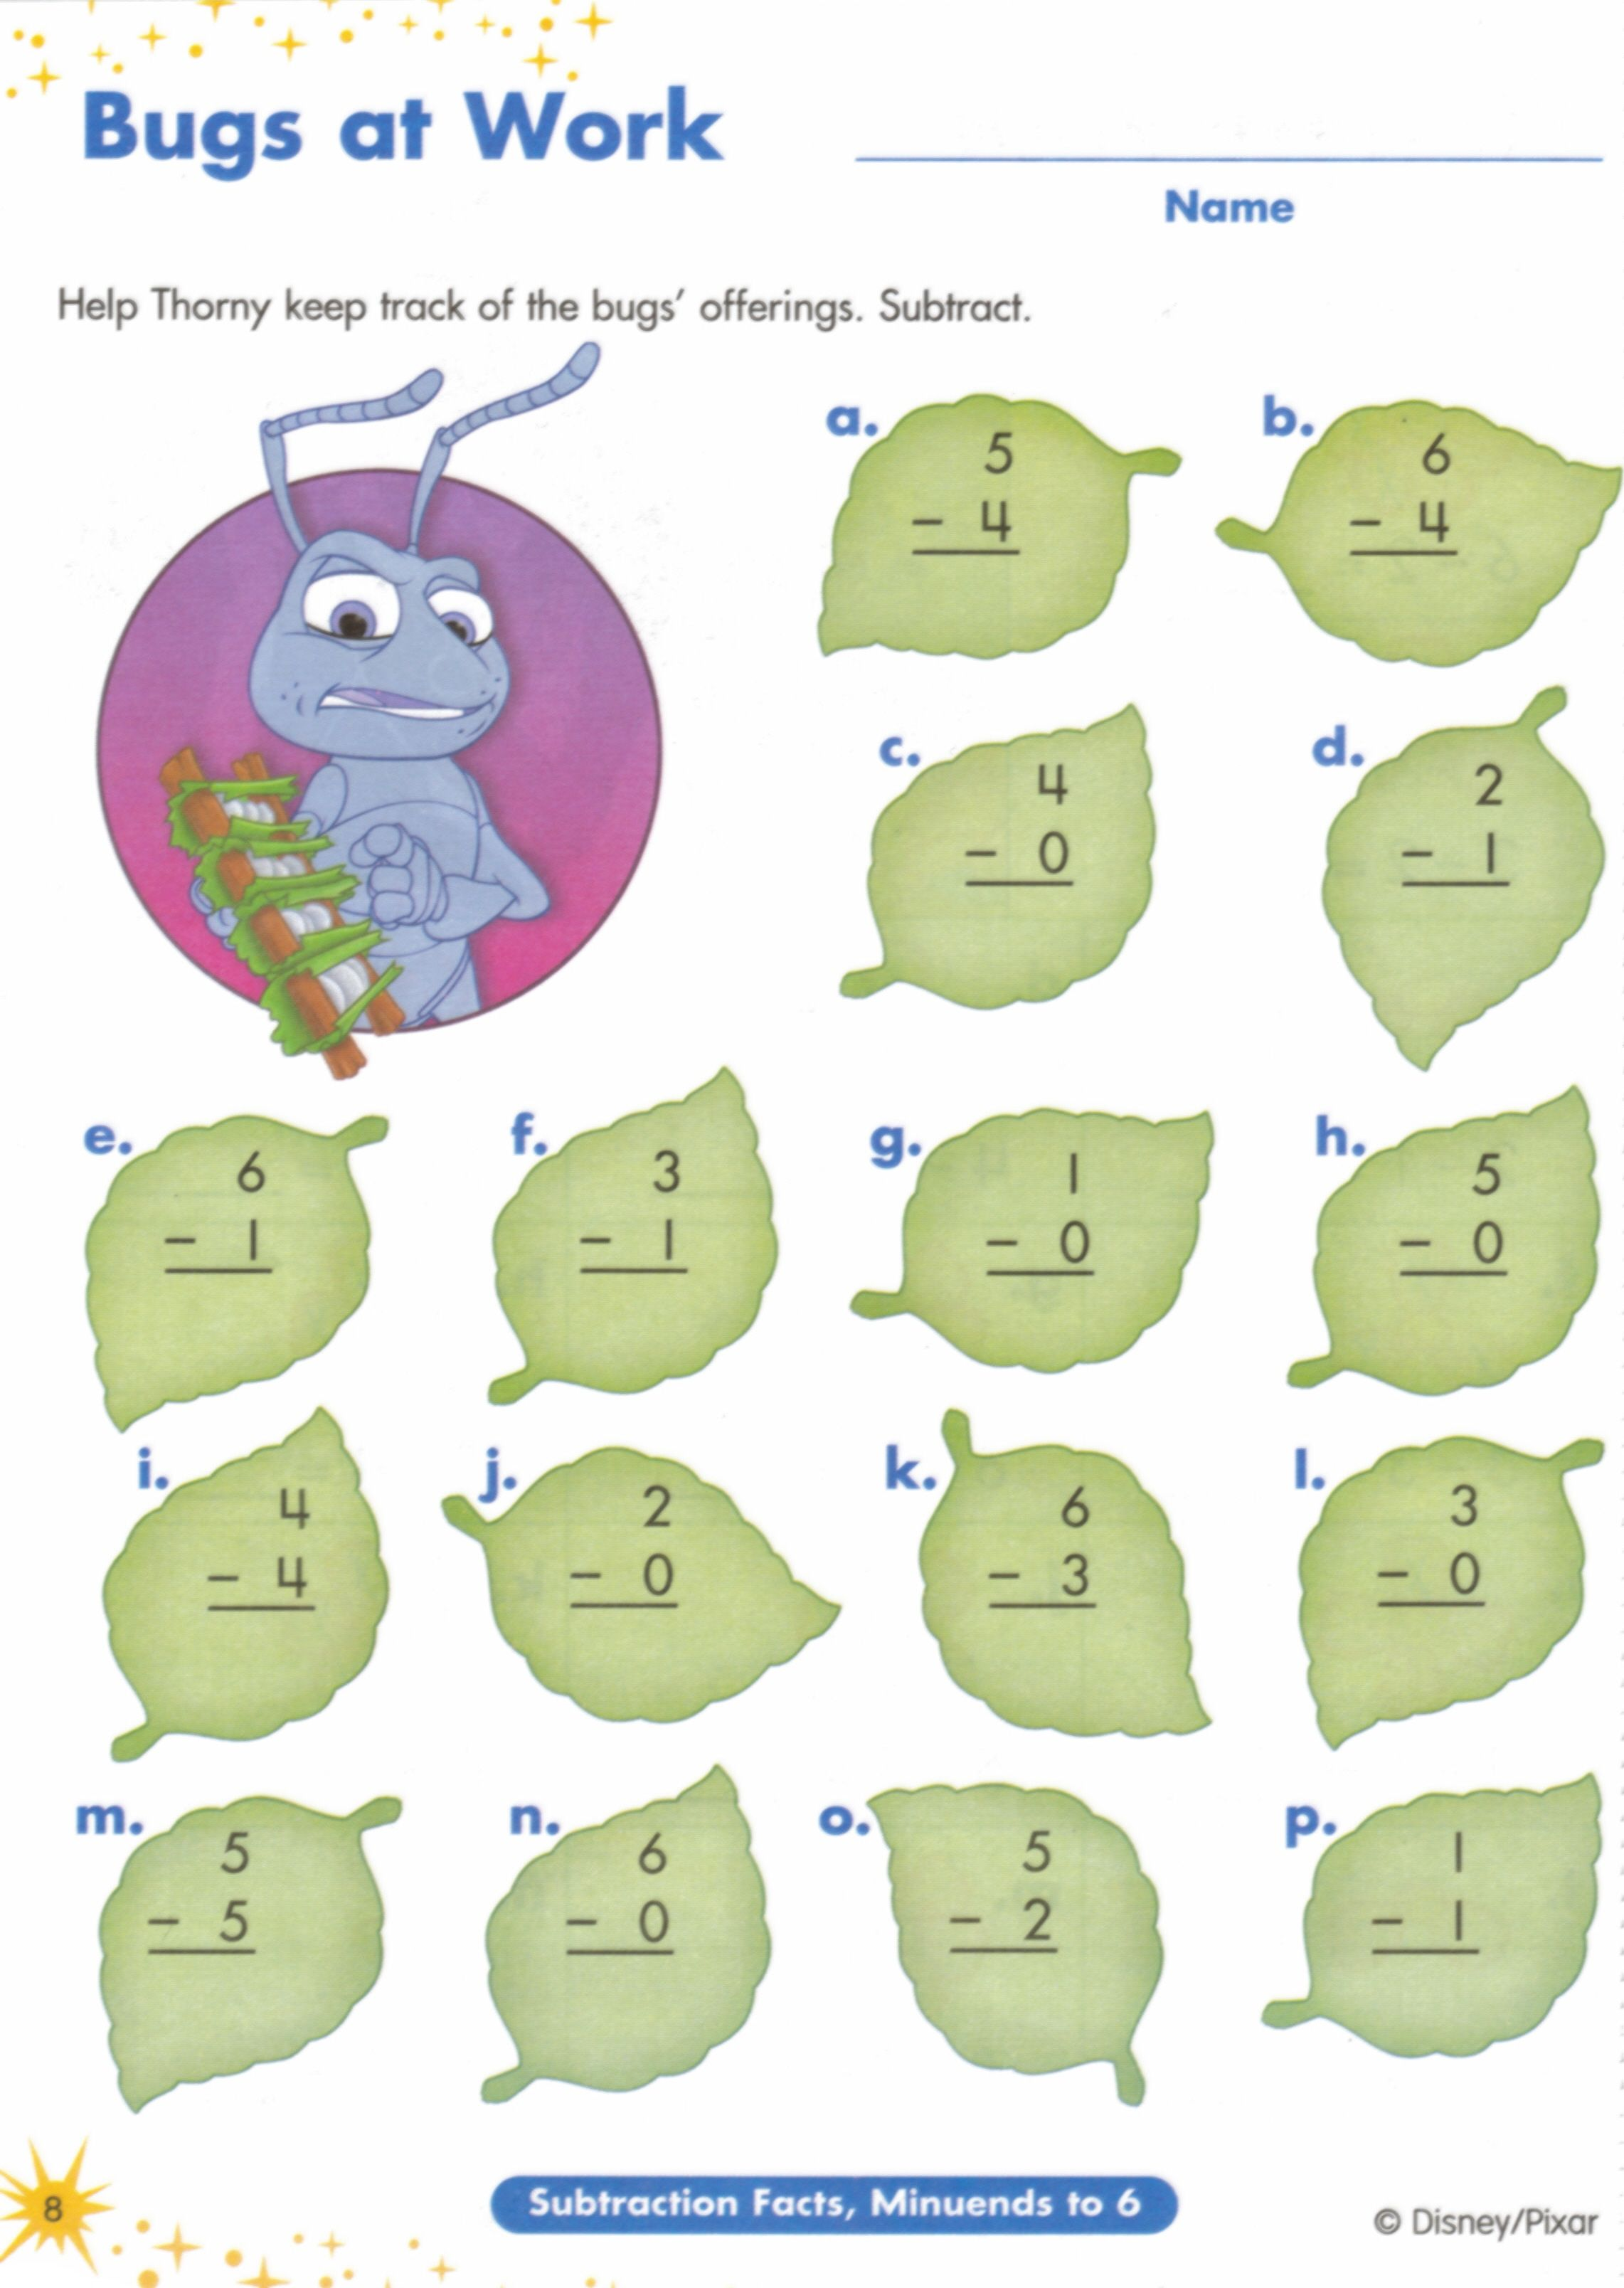 Proatmealus  Unique  Images About Worksheets On Pinterest  Fun Facts For Kids  With Lovely  Images About Worksheets On Pinterest  Fun Facts For Kids Earth Day Worksheets And Jungles With Charming Kindergarten Addition Worksheets Also Simplifying Rational Expressions Worksheet In Addition Darwins Natural Selection Worksheet And Free Printable Multiplication Worksheets As Well As Exponential Growth And Decay Worksheet Additionally Protons Neutrons And Electrons Practice Worksheet From Pinterestcom With Proatmealus  Lovely  Images About Worksheets On Pinterest  Fun Facts For Kids  With Charming  Images About Worksheets On Pinterest  Fun Facts For Kids Earth Day Worksheets And Jungles And Unique Kindergarten Addition Worksheets Also Simplifying Rational Expressions Worksheet In Addition Darwins Natural Selection Worksheet From Pinterestcom